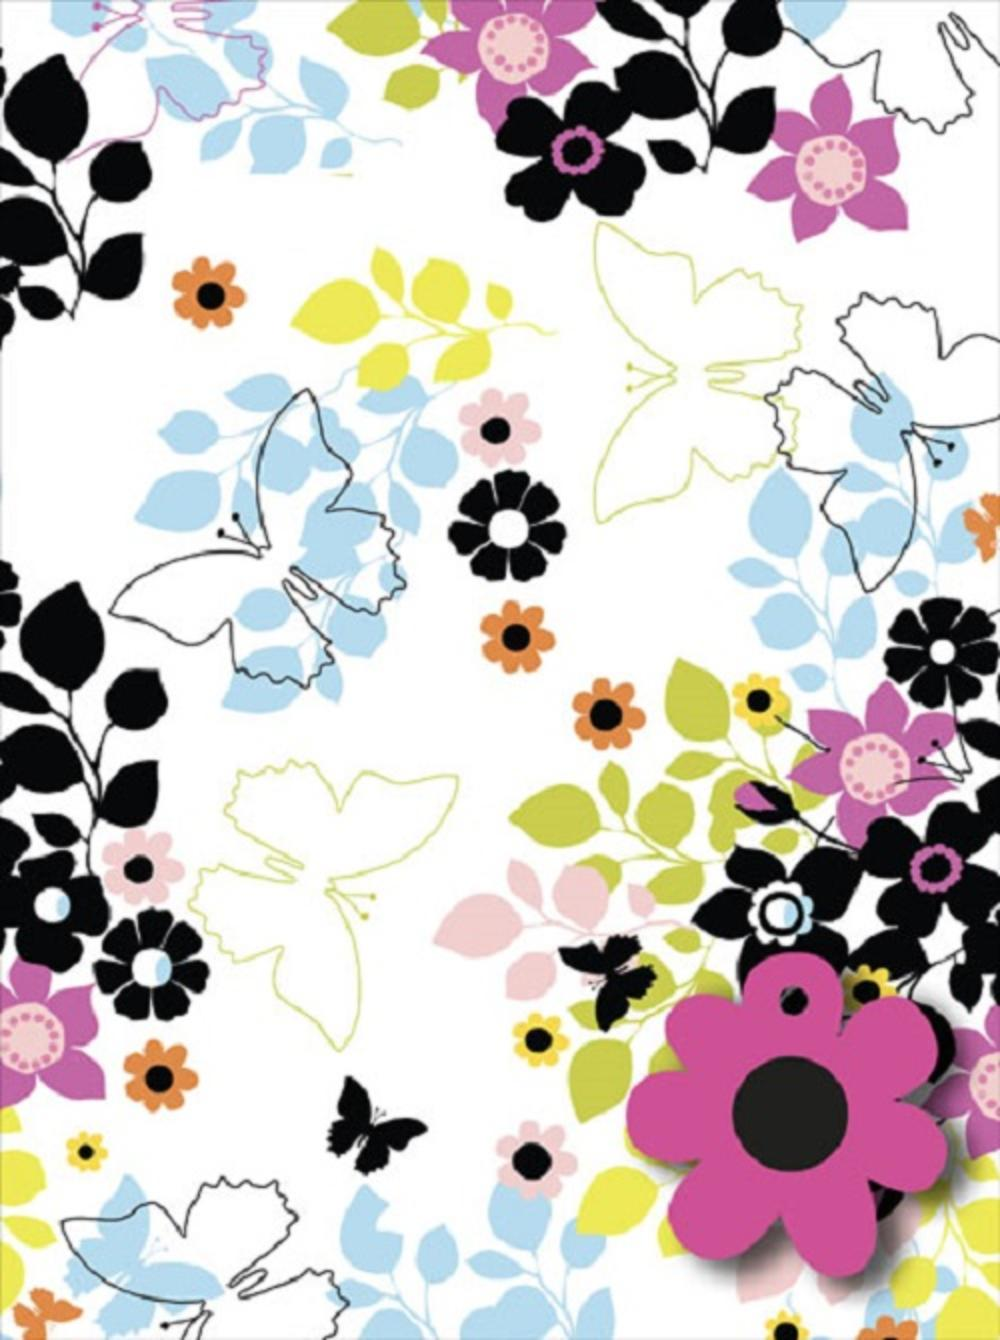 Flower & Butterfly Wrapping Paper Pack Wrap Set